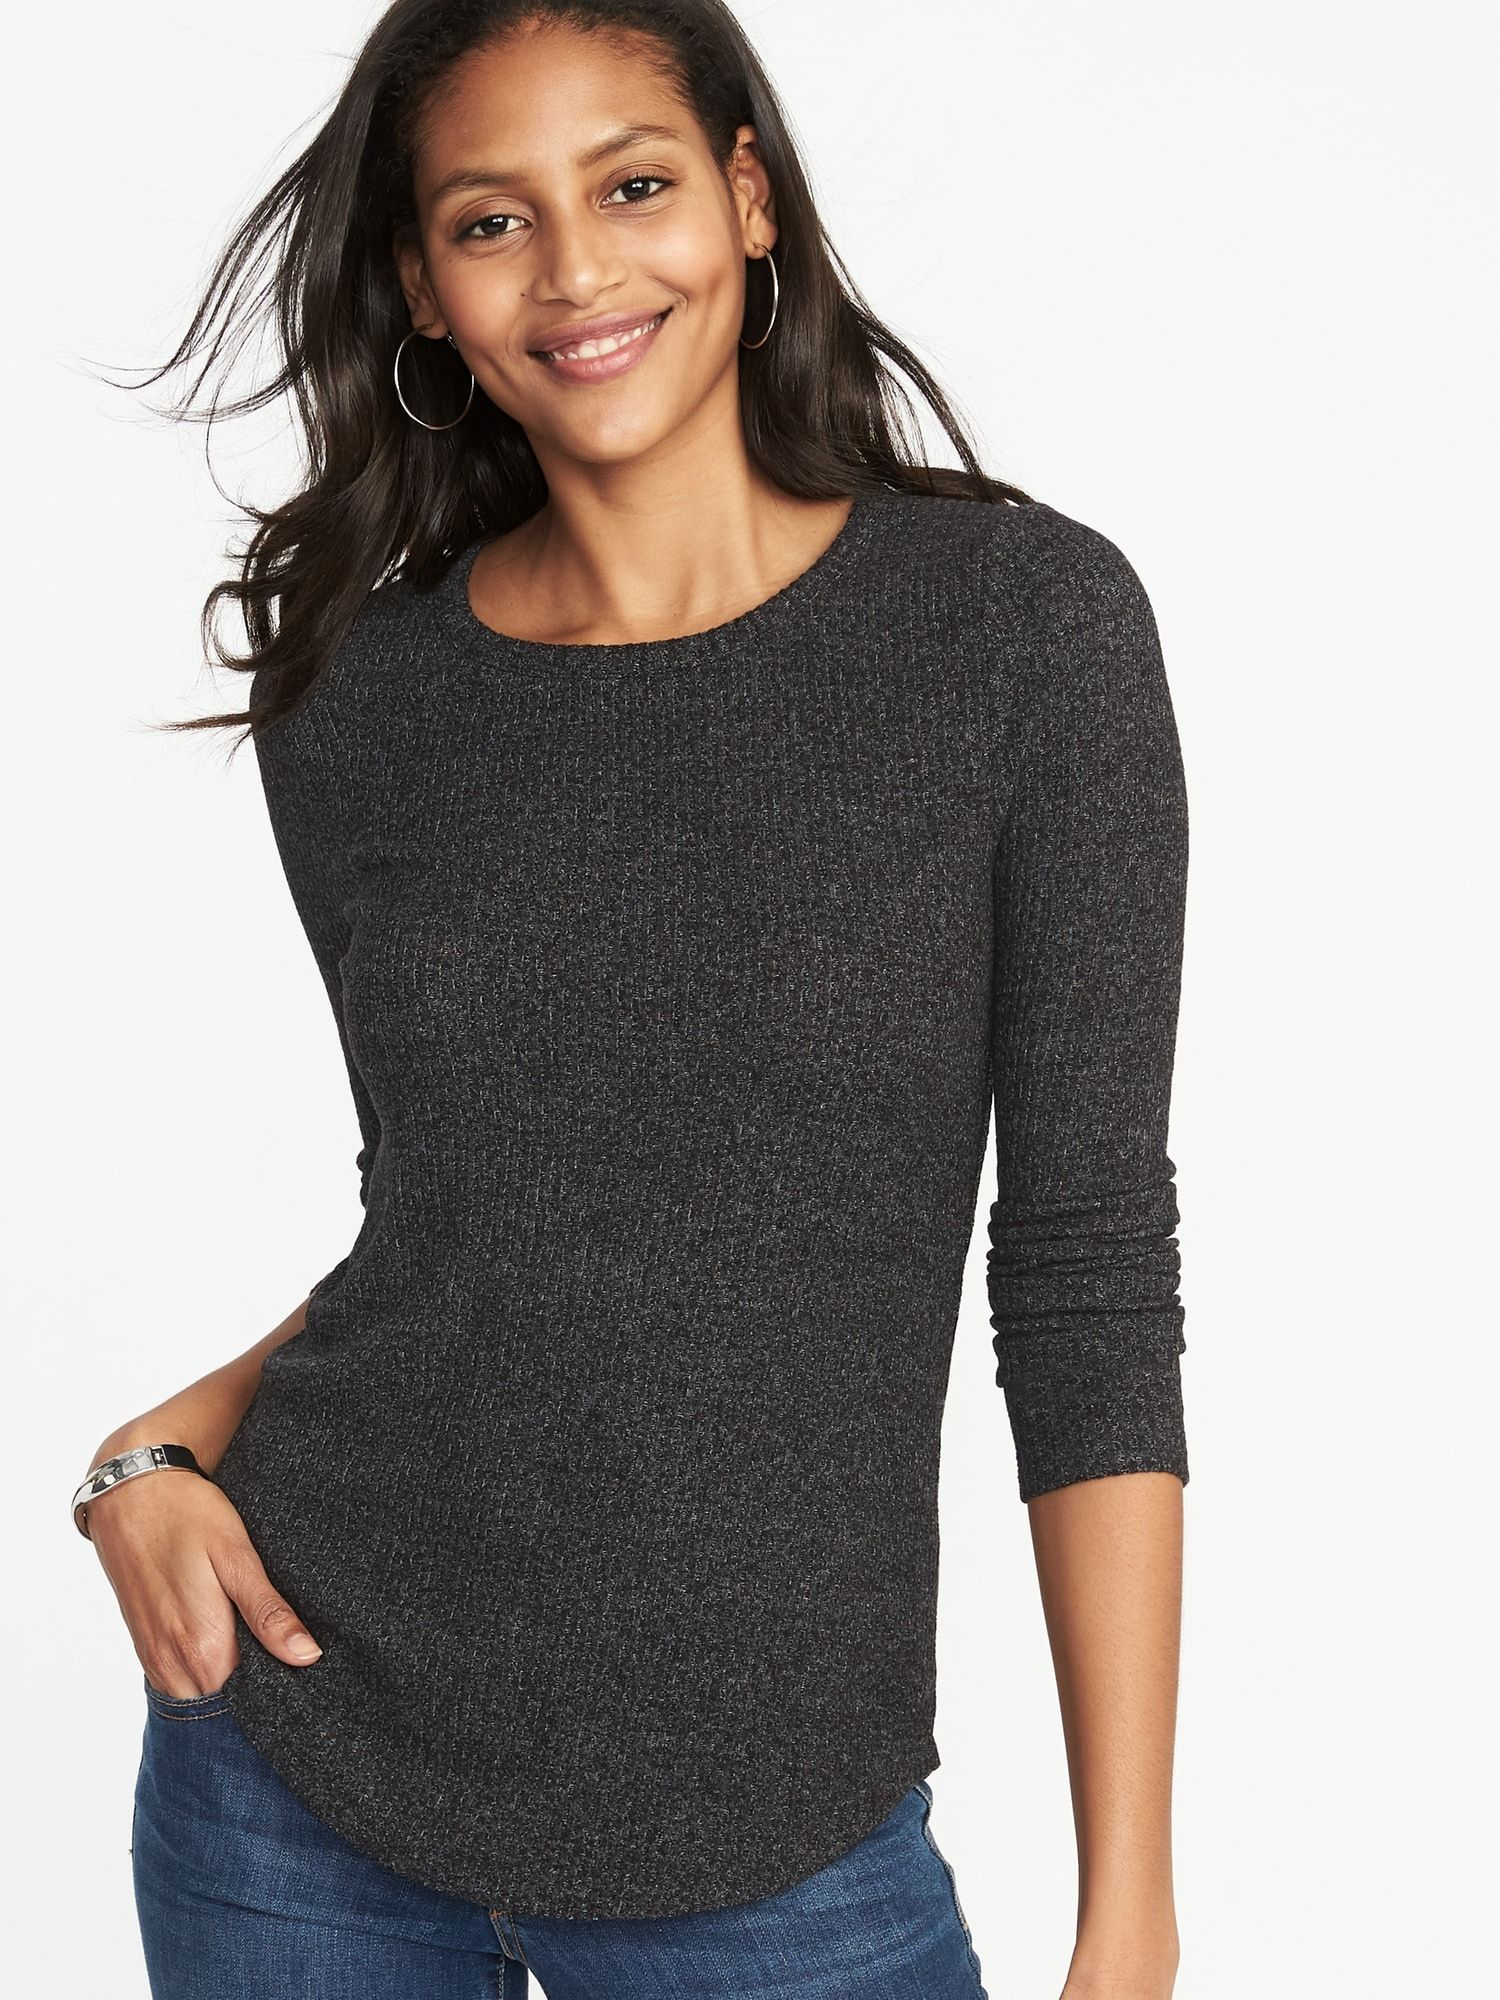 b99569855c Crew-Neck Sweater for Women. Slim-Fit Luxe Rib-Knit Top for Women